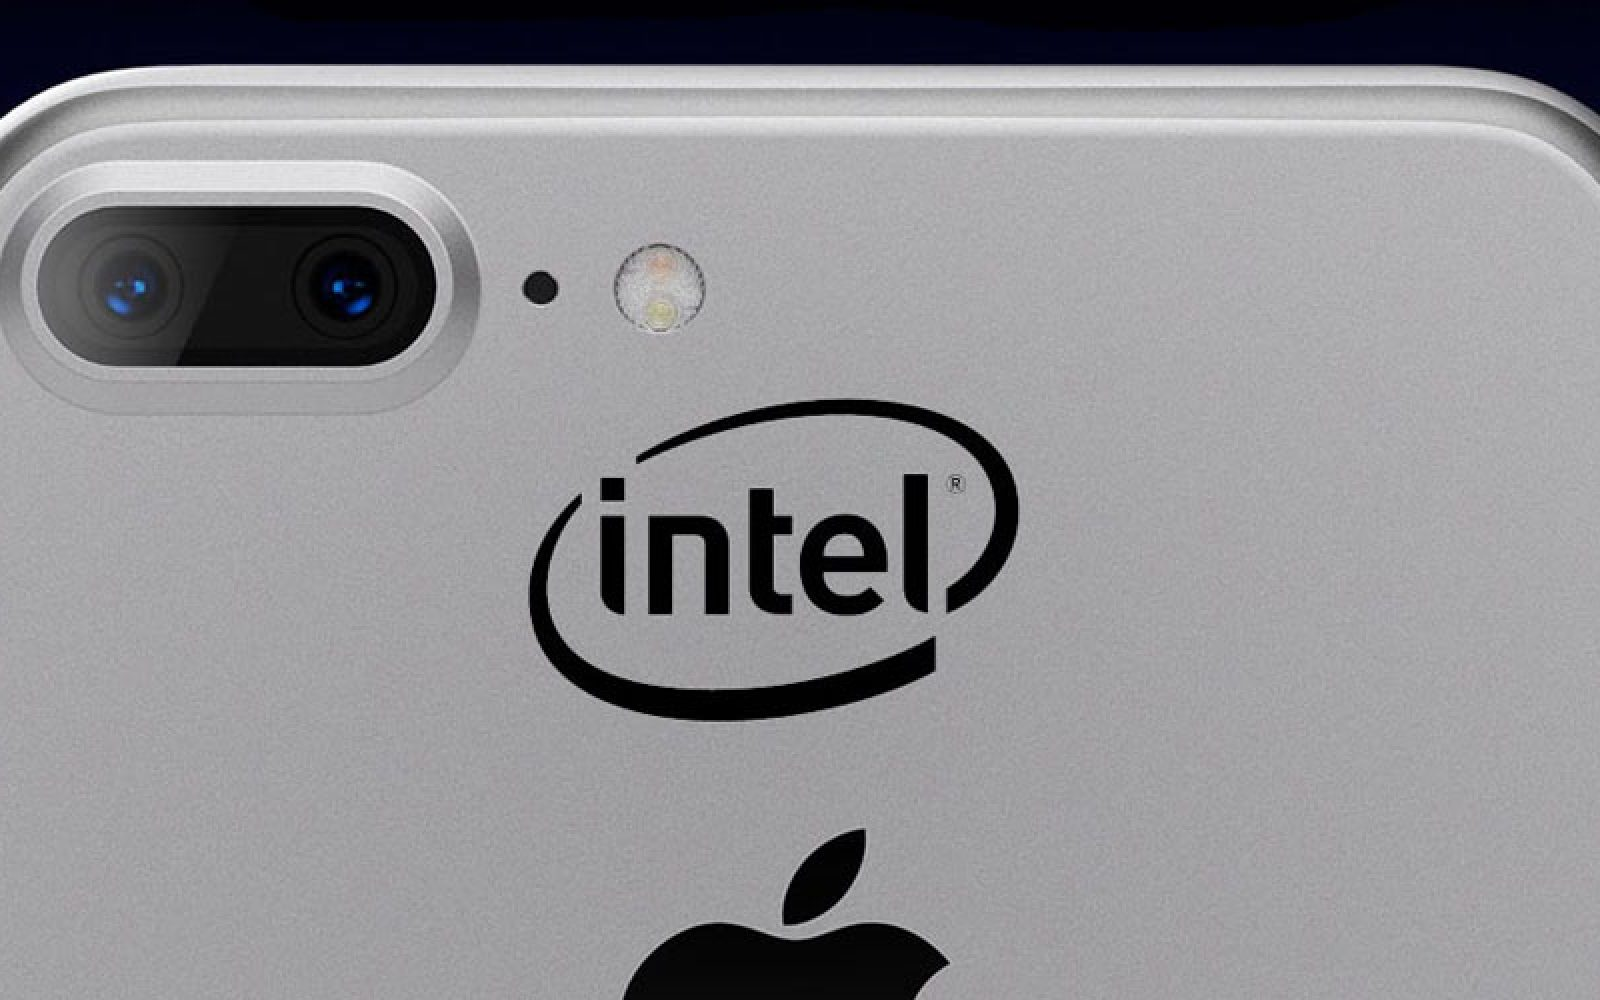 Future iPhones could feature Intel processors, say analysts